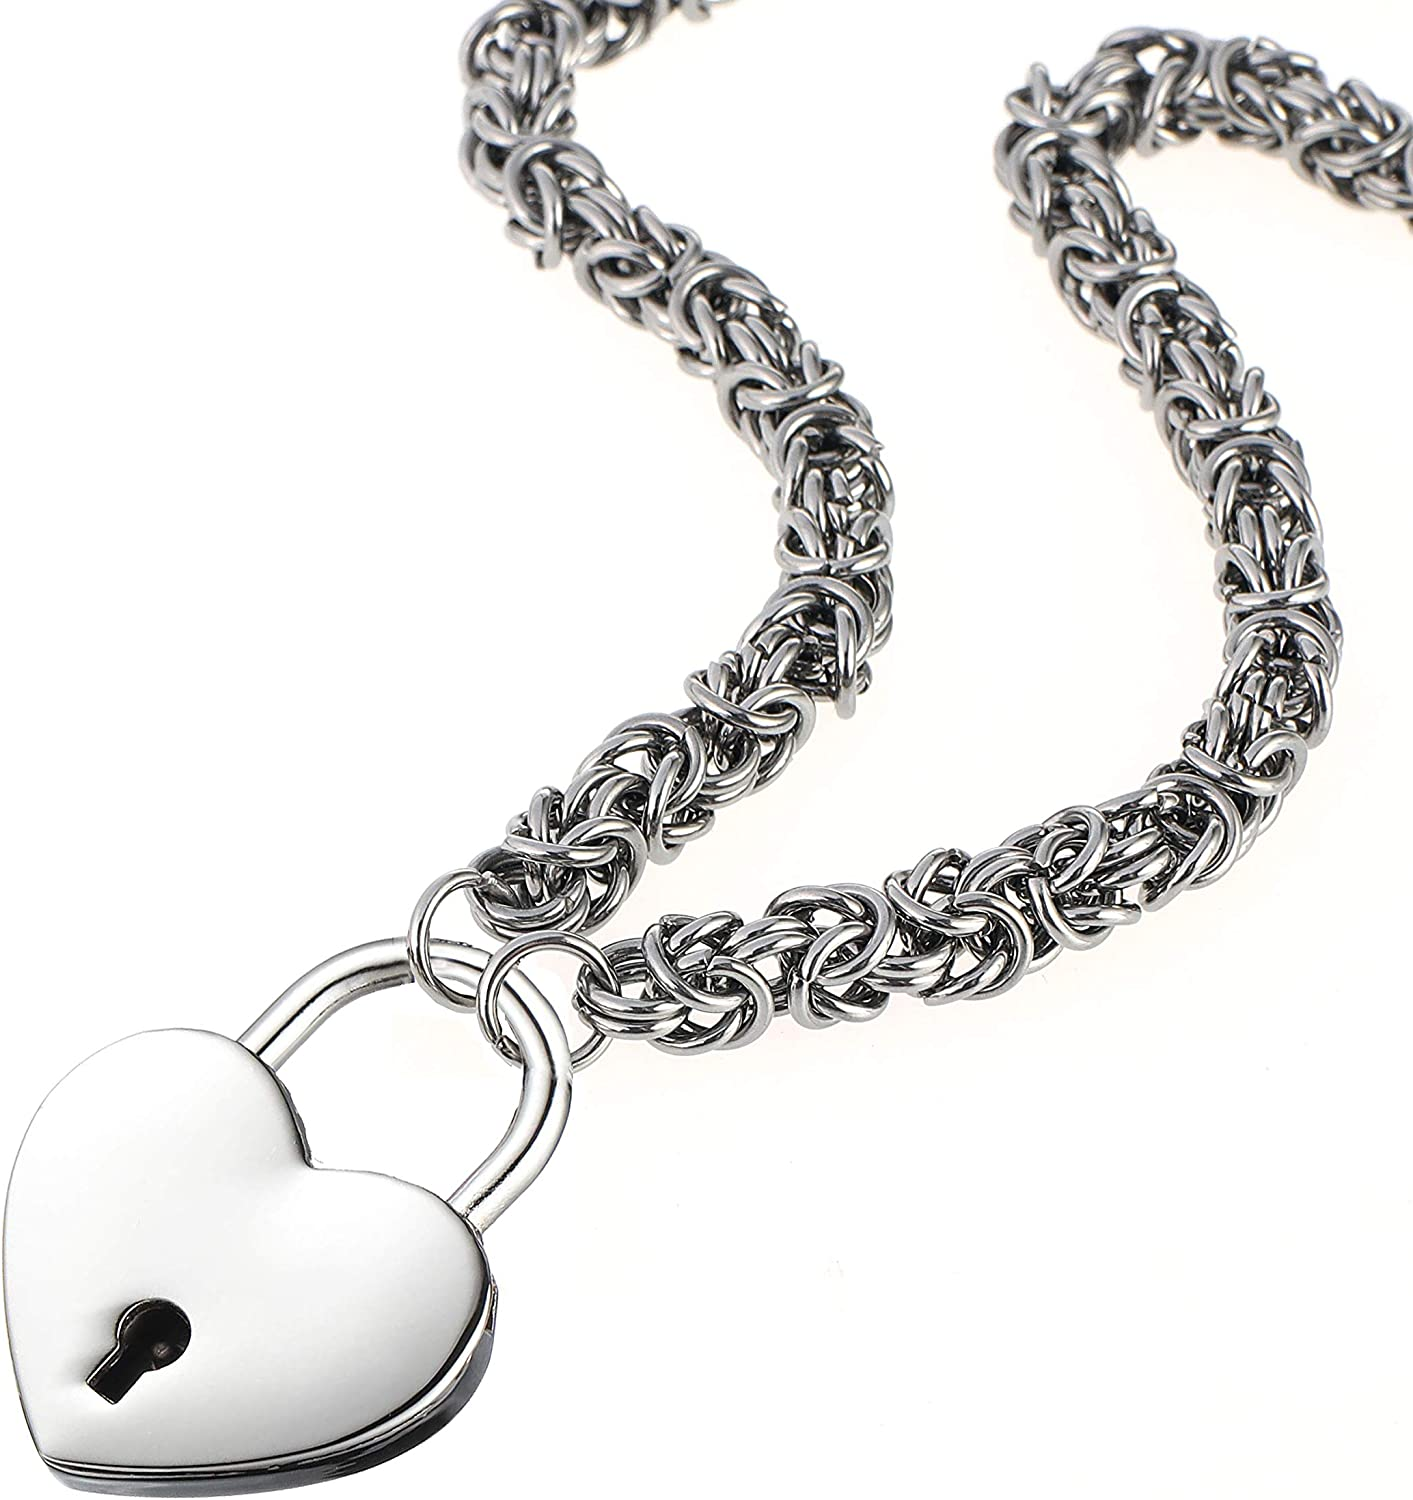 Lock Necklace Stainless Steel Kansas New sales City Mall Chain Collar He Byzantine